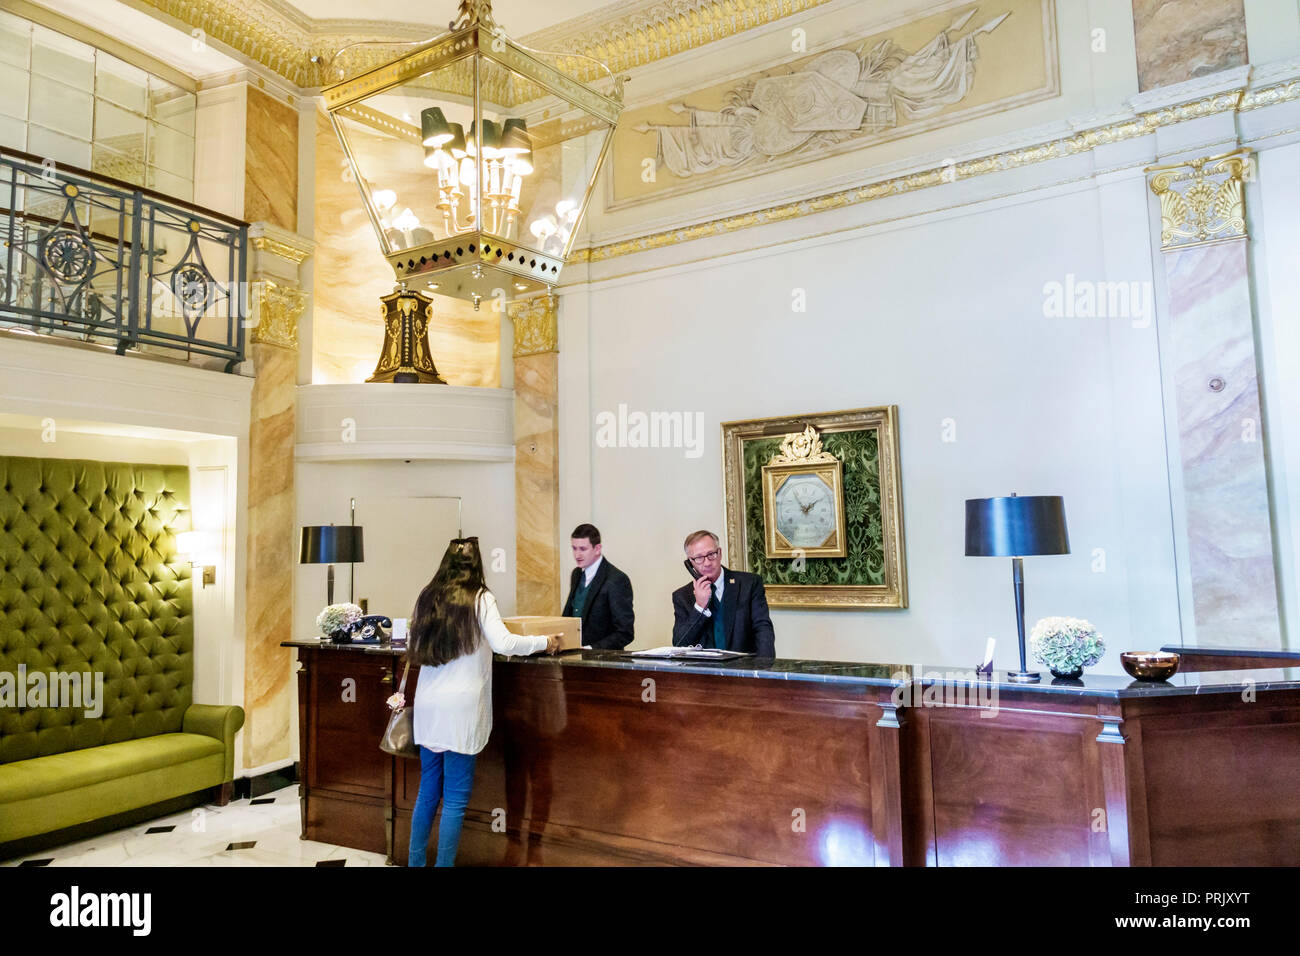 Luxury Hotel Lobby Front Desk Stock Photos & Luxury Hotel ...